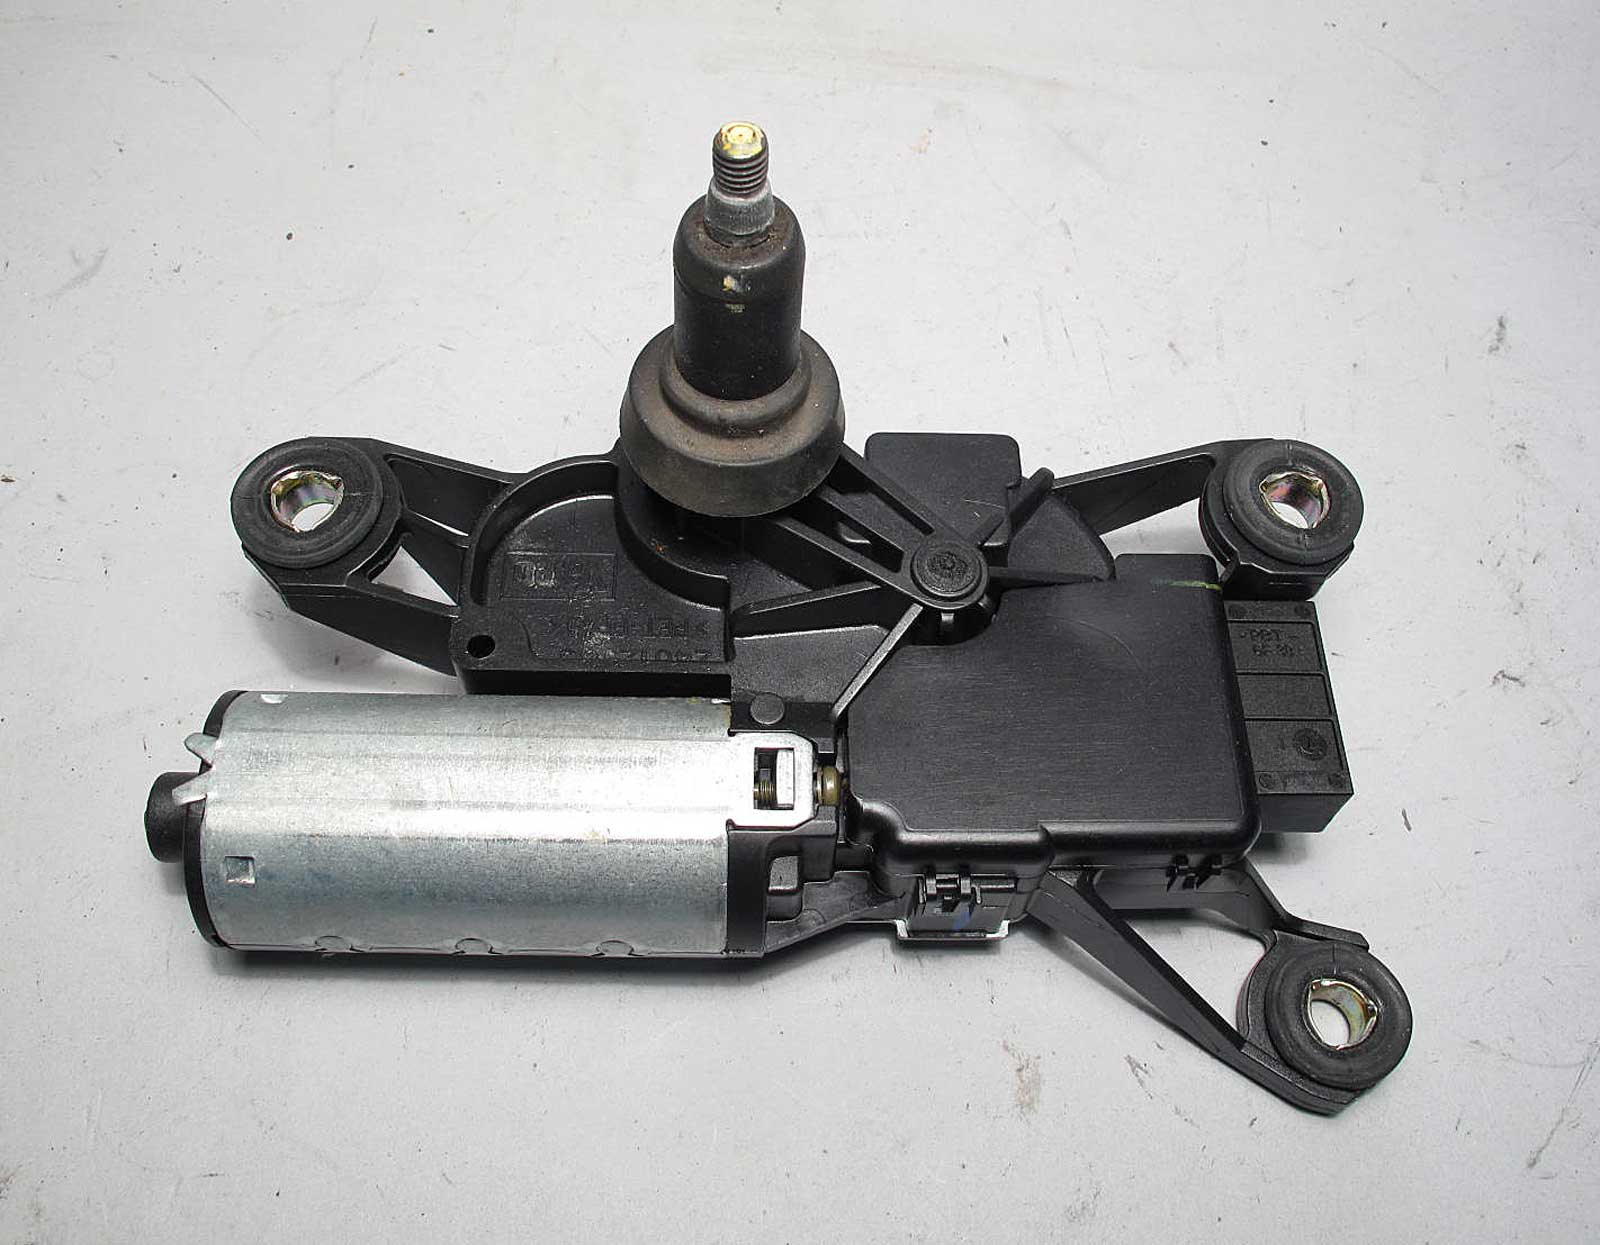 Bmw e53 x5 sav rear window windshield wiper motor 2000 for 2002 bmw x5 rear window regulator